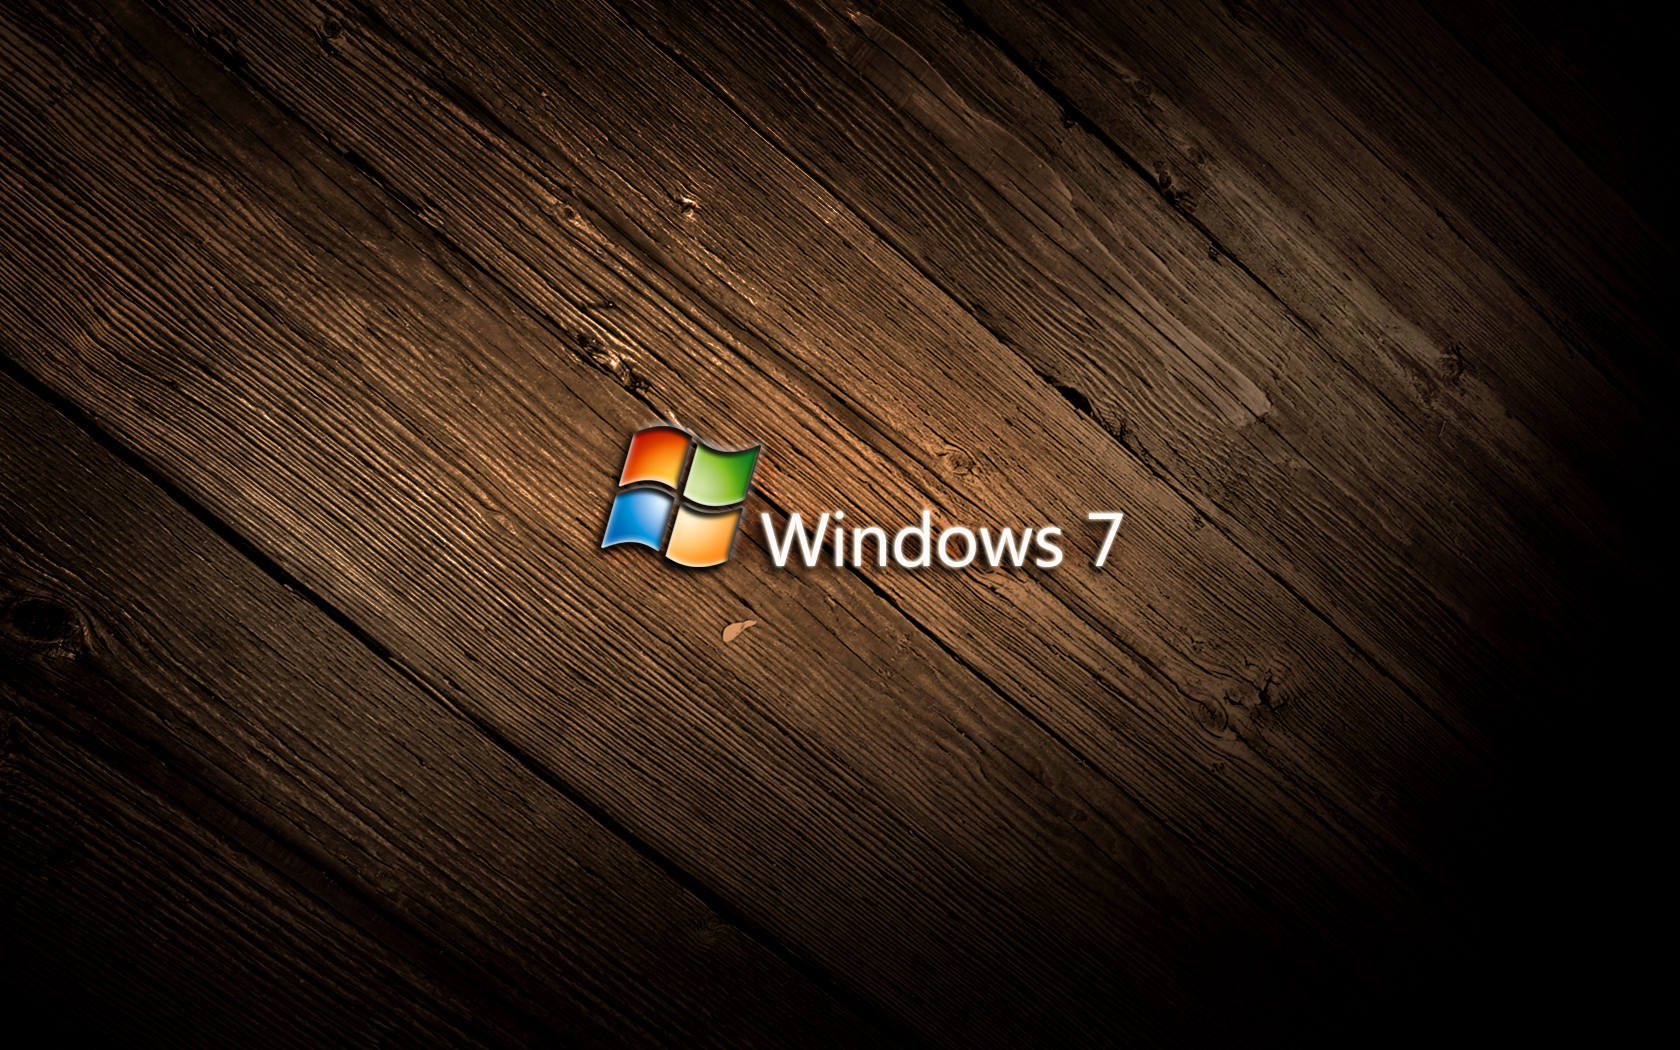 Wallpaper HD For Windows 7 Free Download